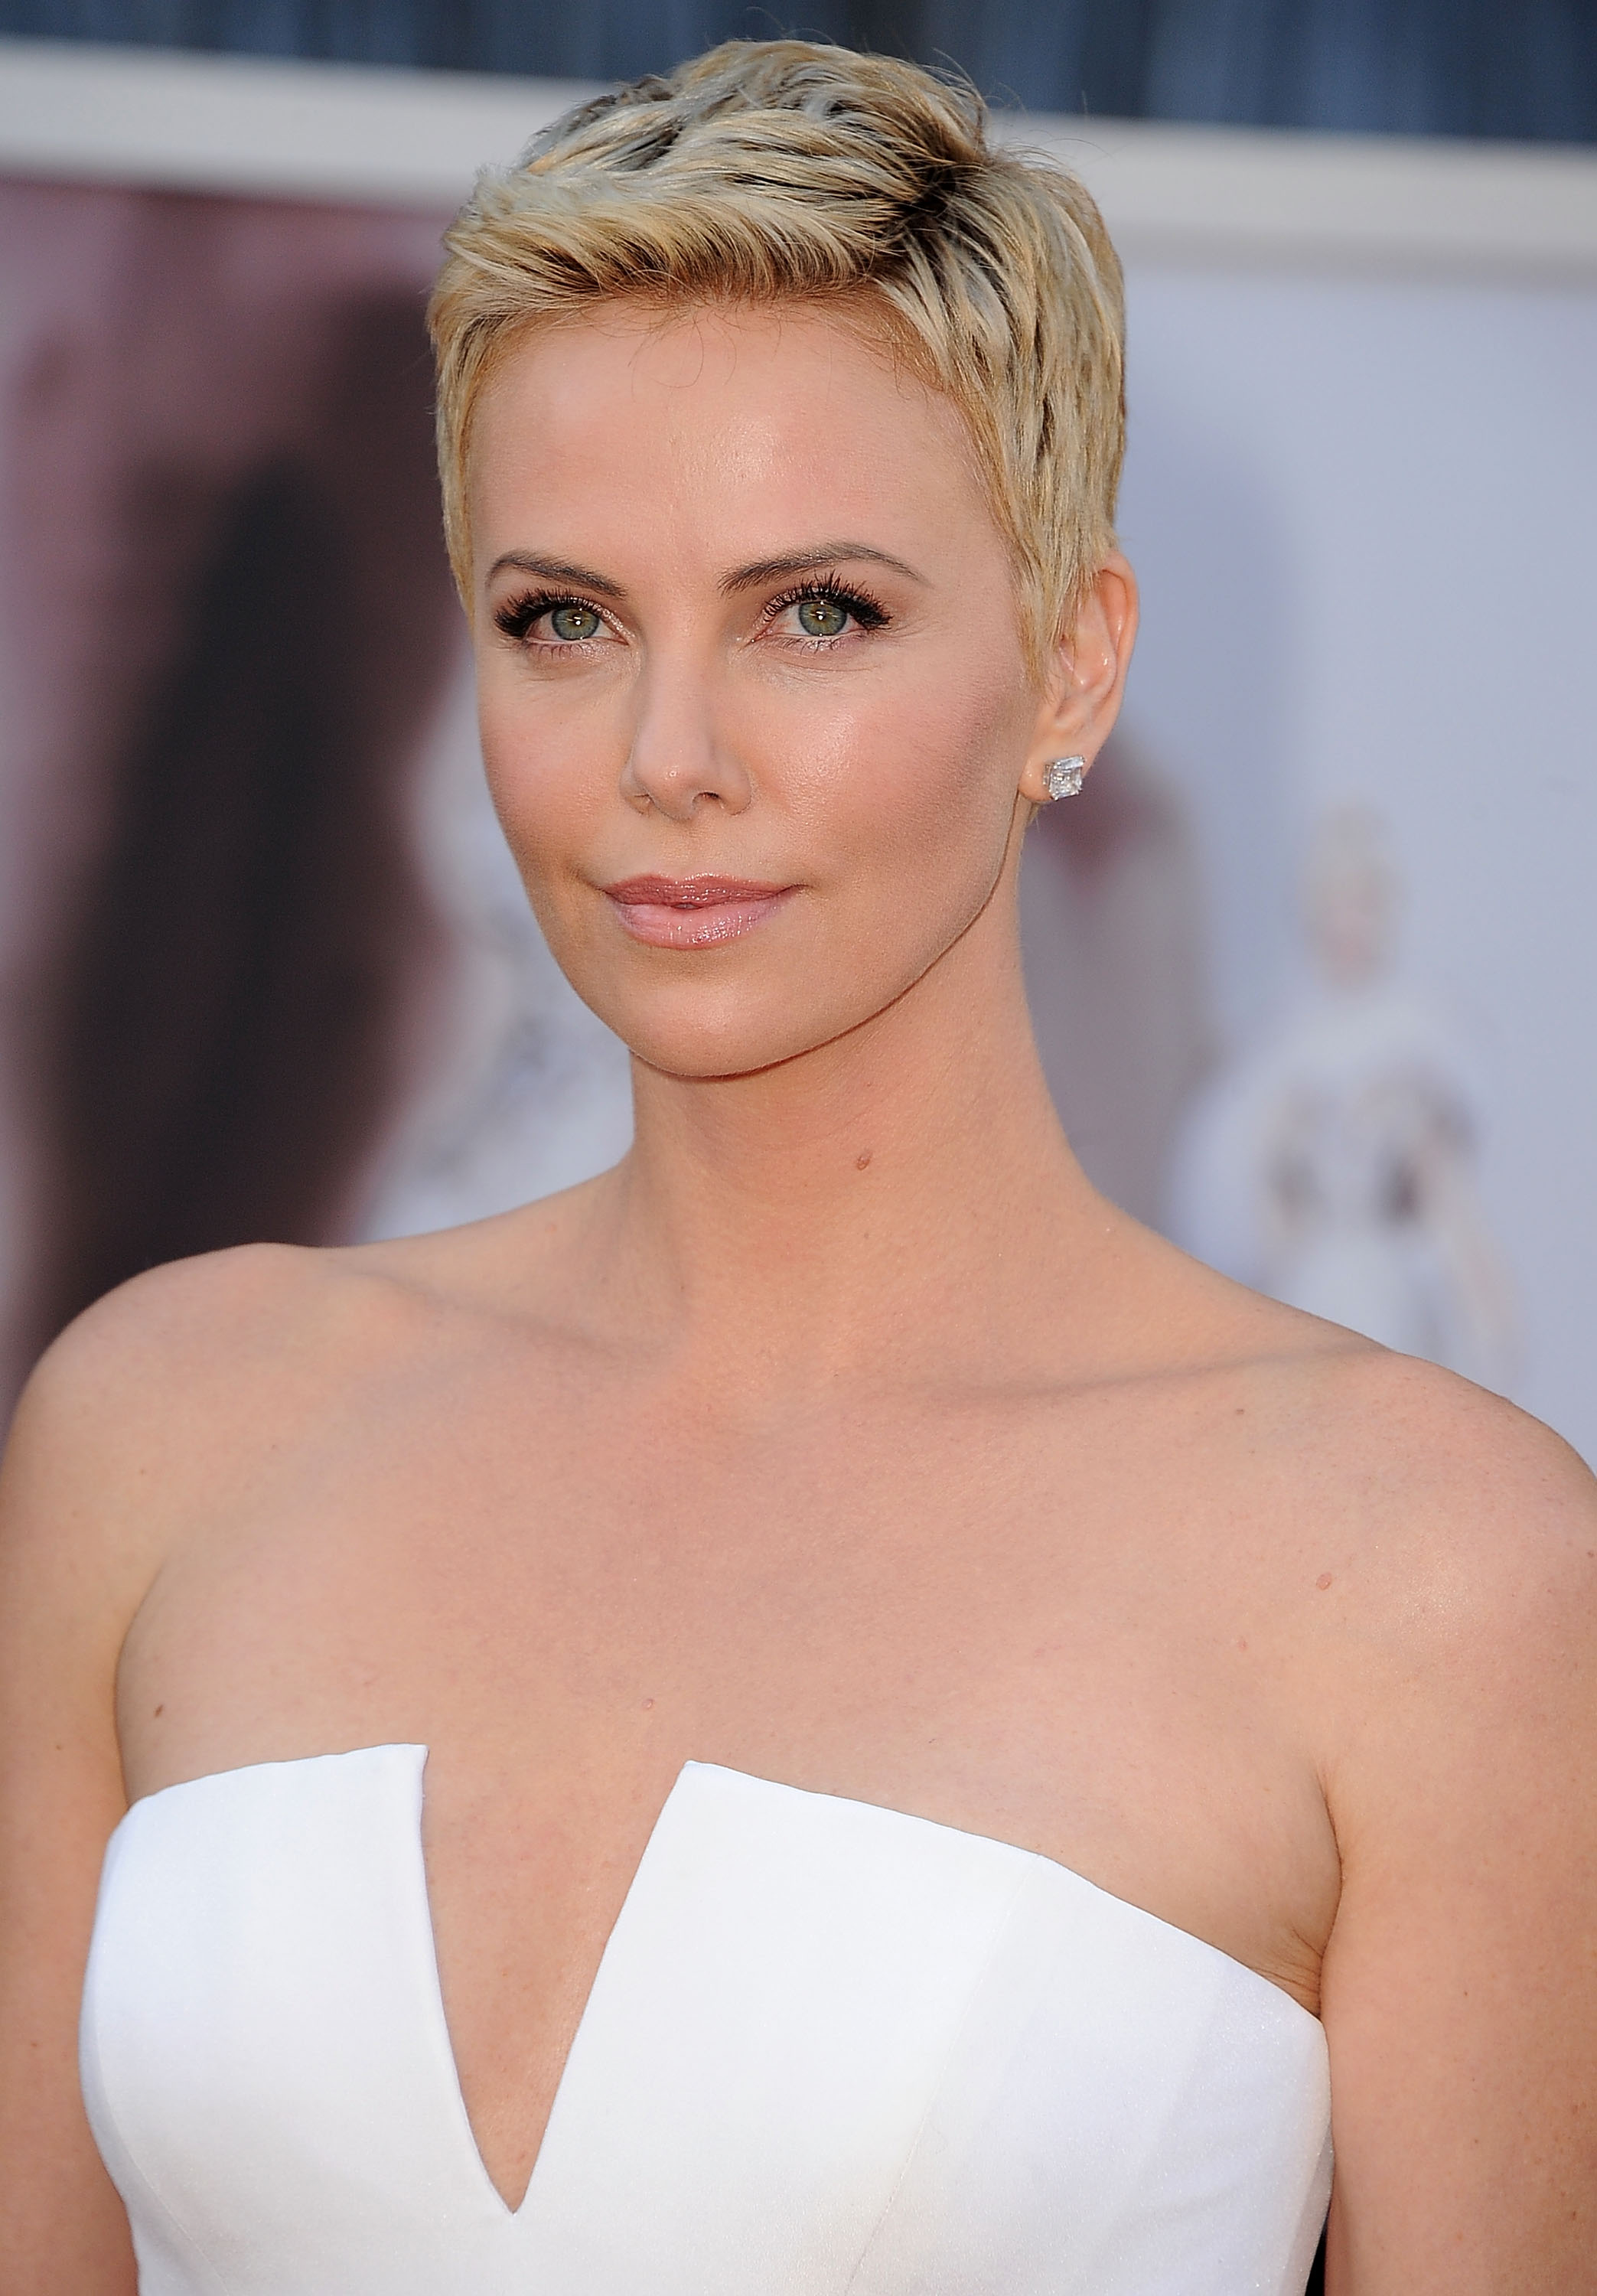 Incredible 34 Pixie Hairstyles And Cuts Celebrities With Pixies Short Hairstyles Gunalazisus